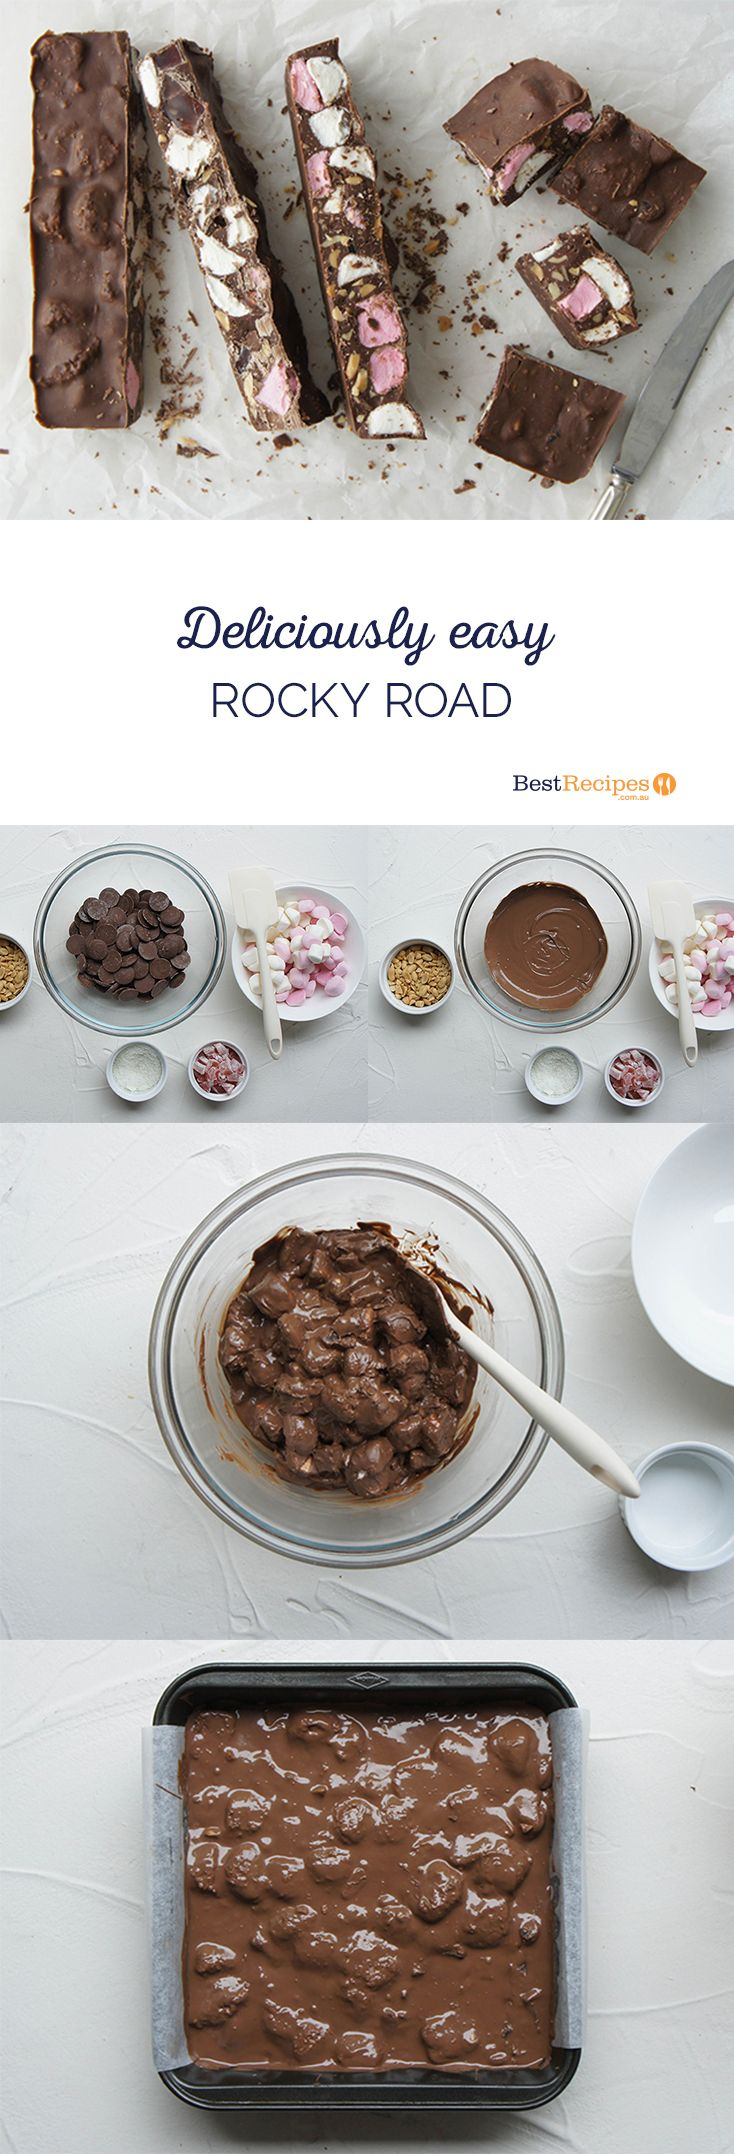 "Rocky Road in 5 simple steps  - ""Have made this twice in the past week, once with dark chocolate and once with milk chocolate. Both are equally delicious. "" - mad56"